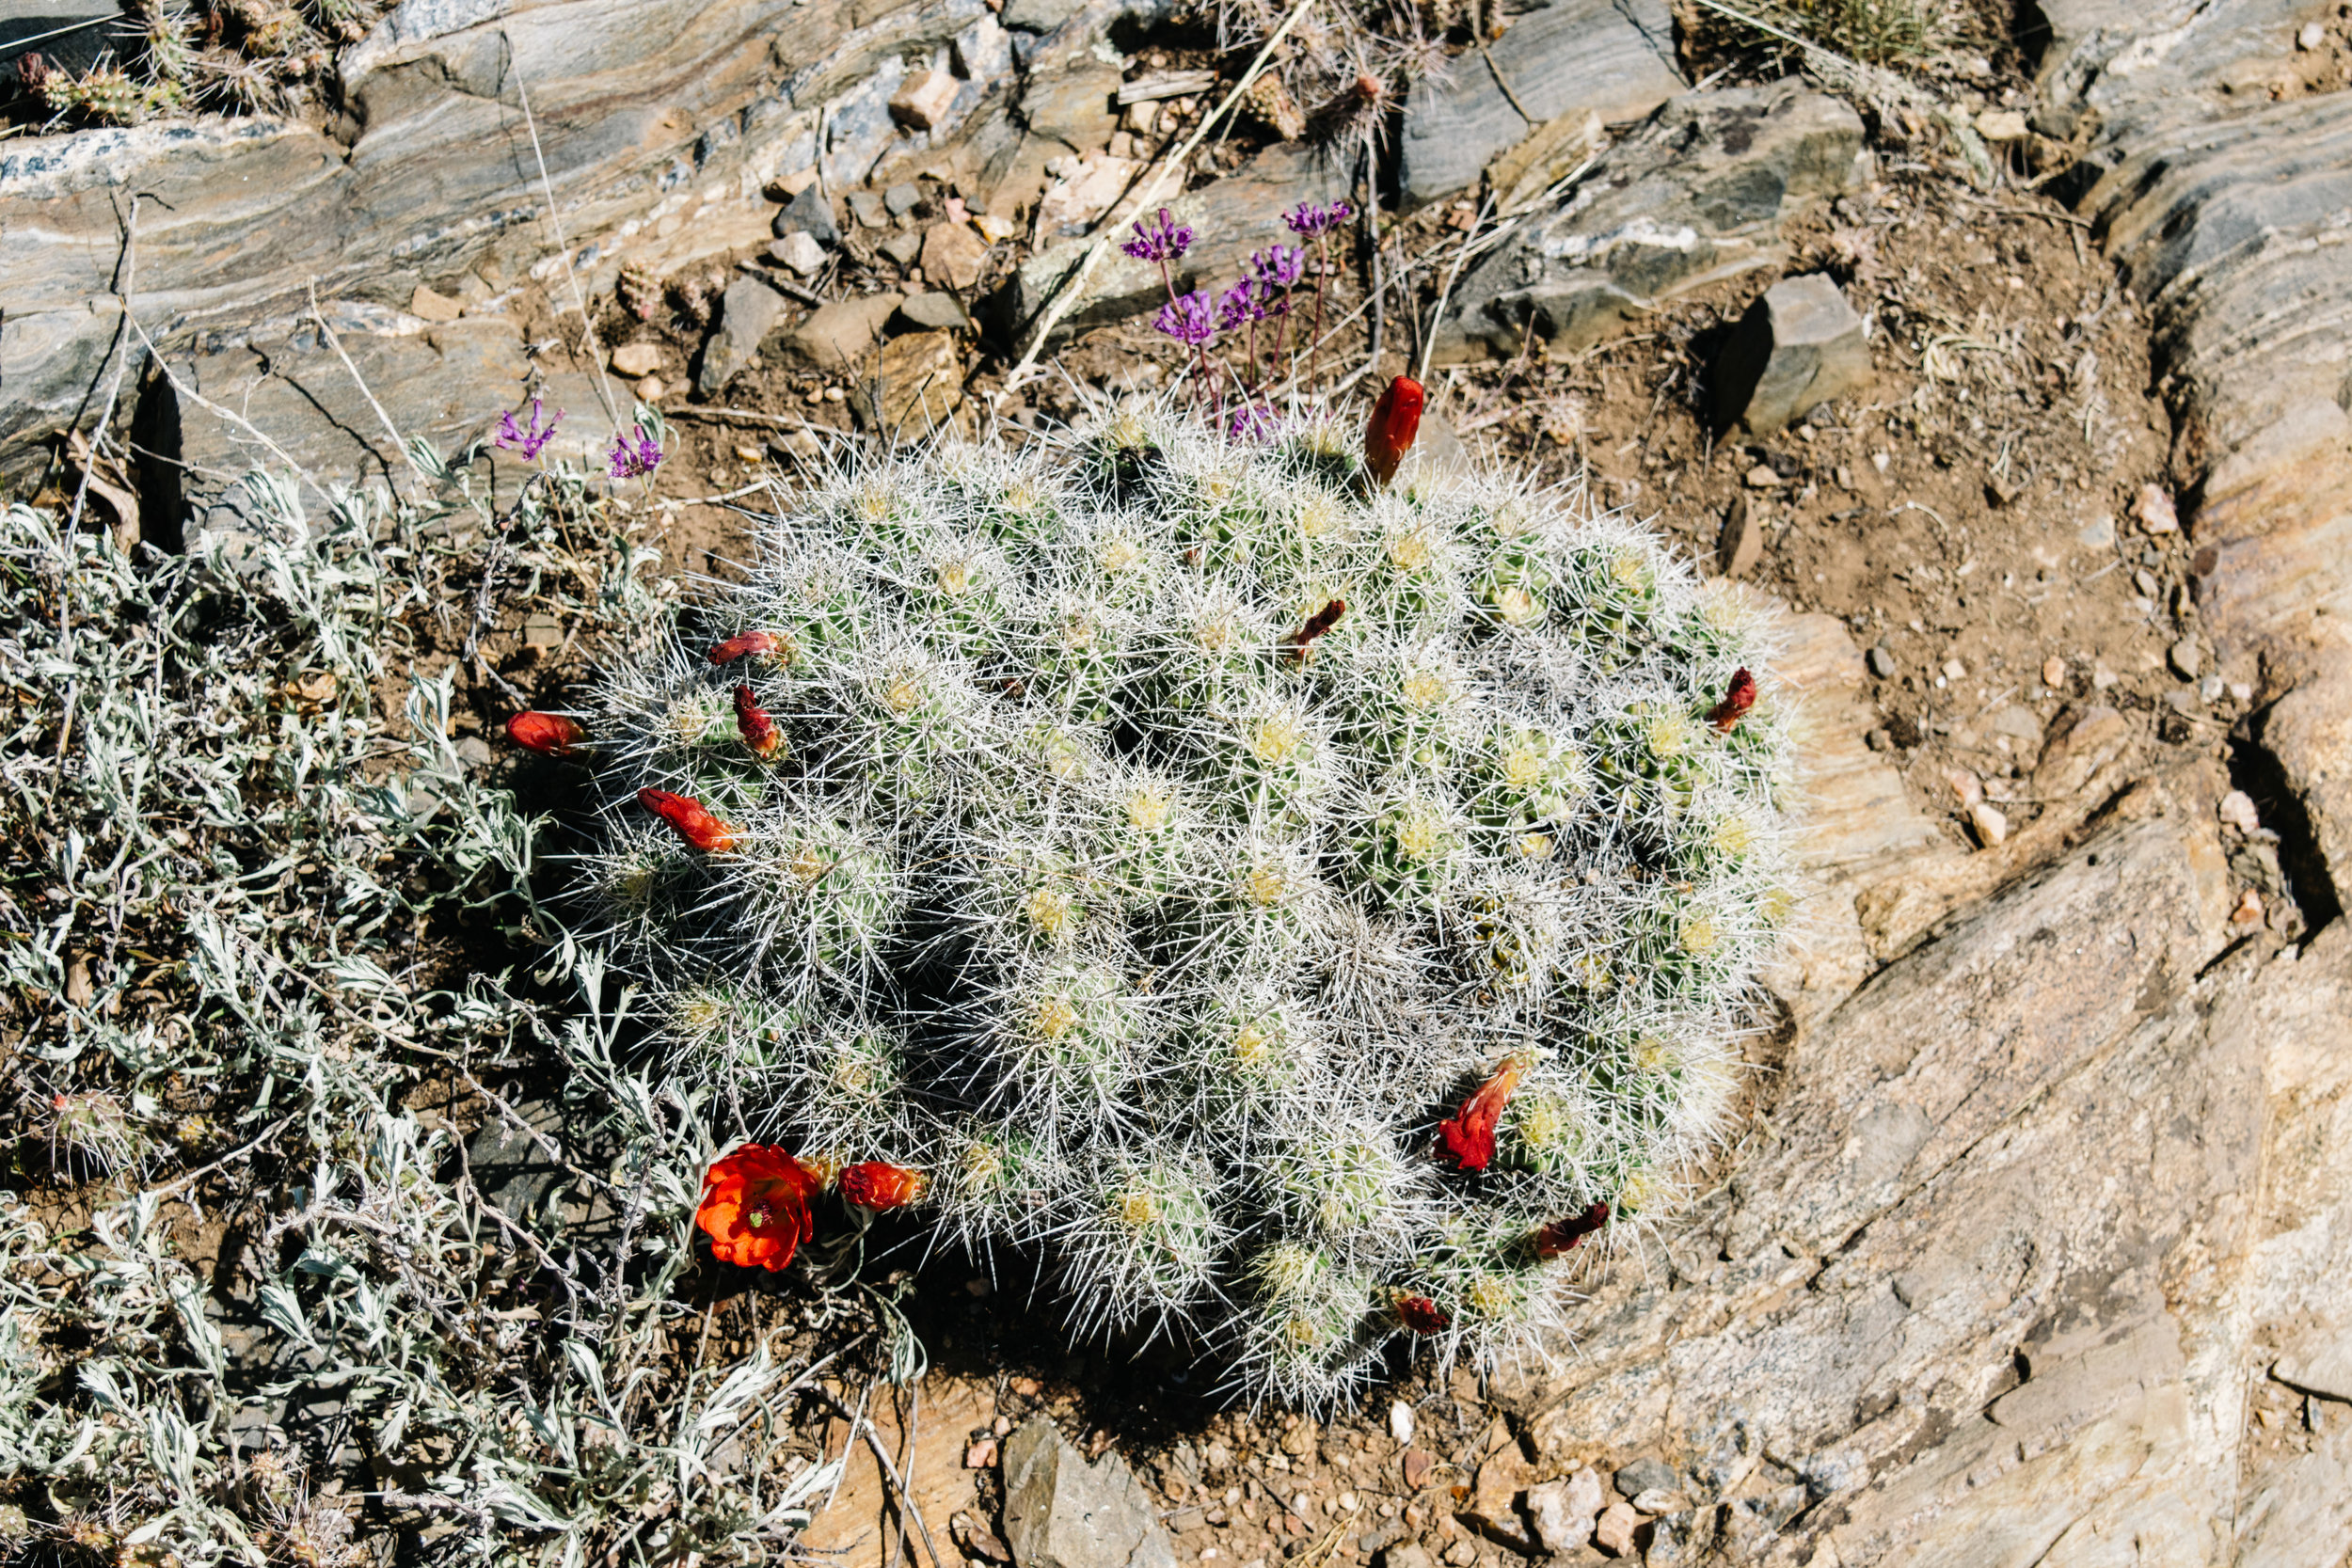 Bonus: here's the state cactus of Colorado! The Claret Cup Cactus was named state cactus in March of this year.